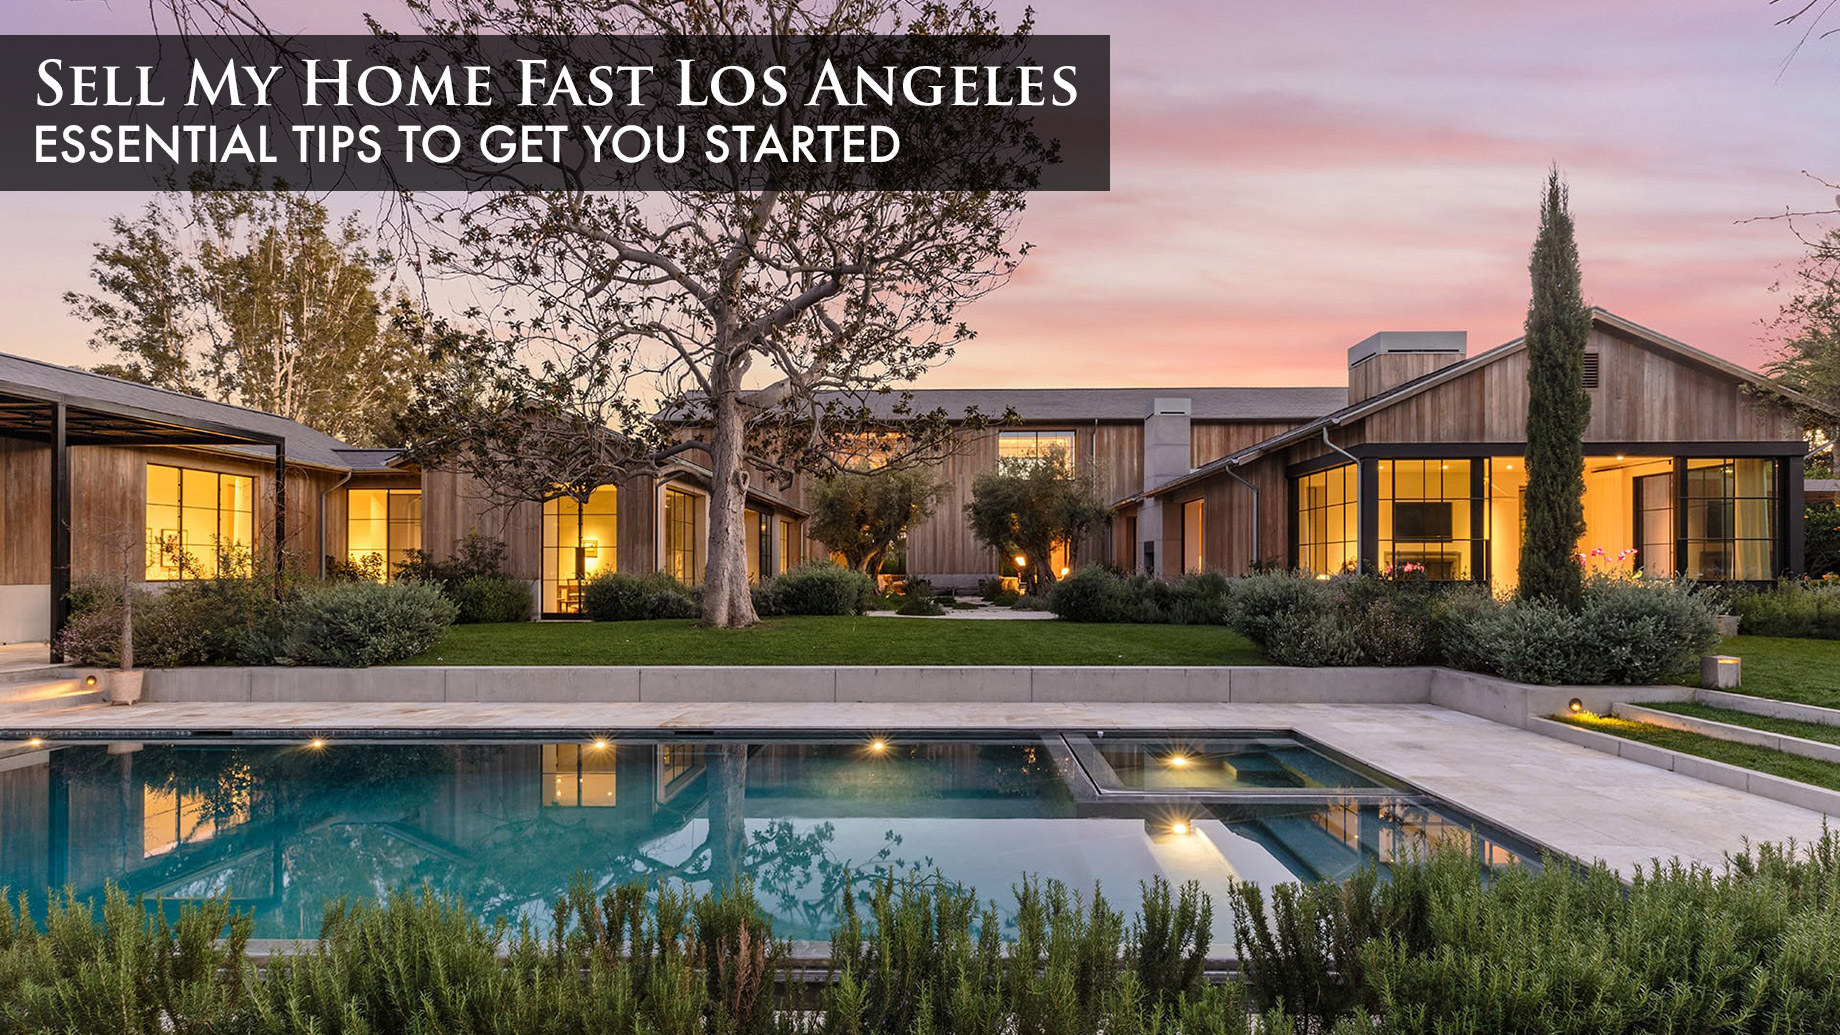 Sell My Los Angeles Home Fast - Essential Tips To Get You Started